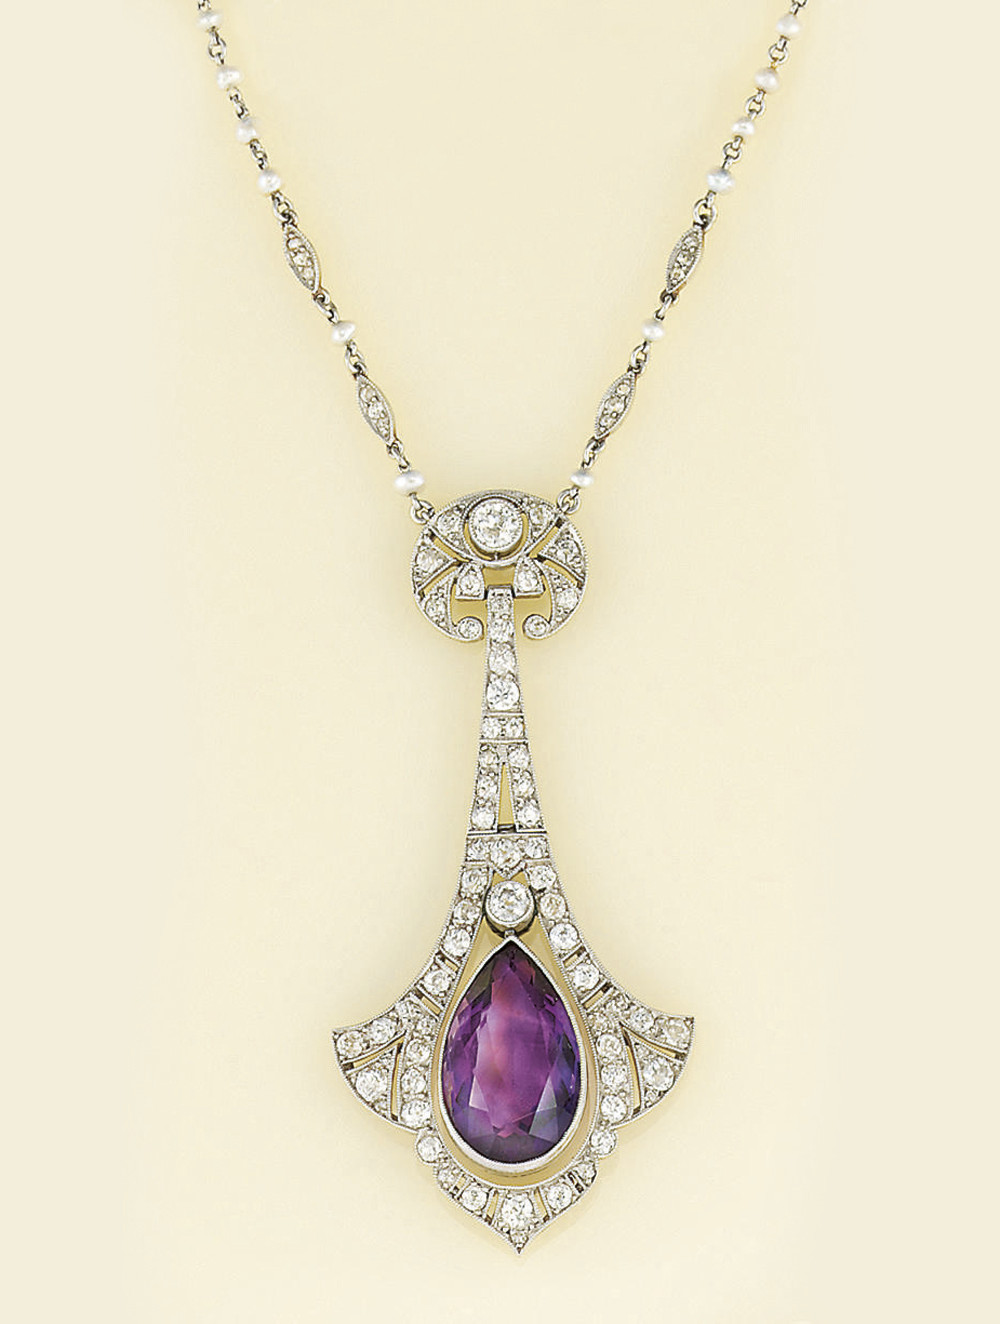 A Belle Epoque amethyst and di